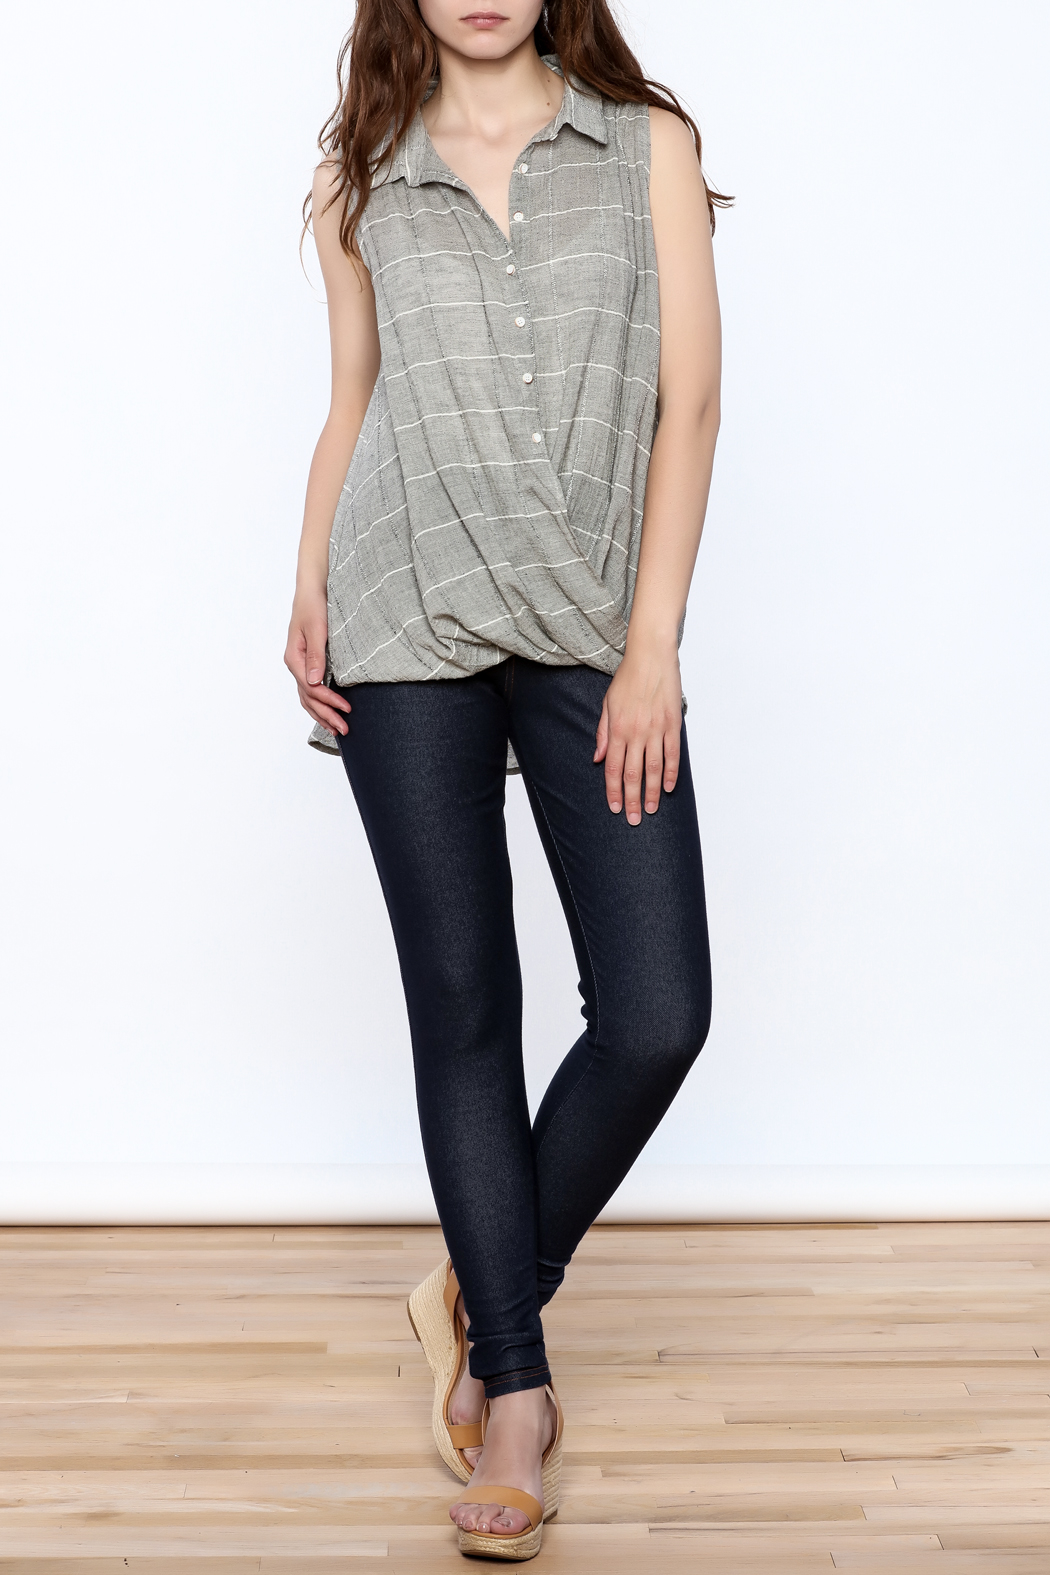 Jella Couture Grey Sleeveless Billowy Top - Front Full Image